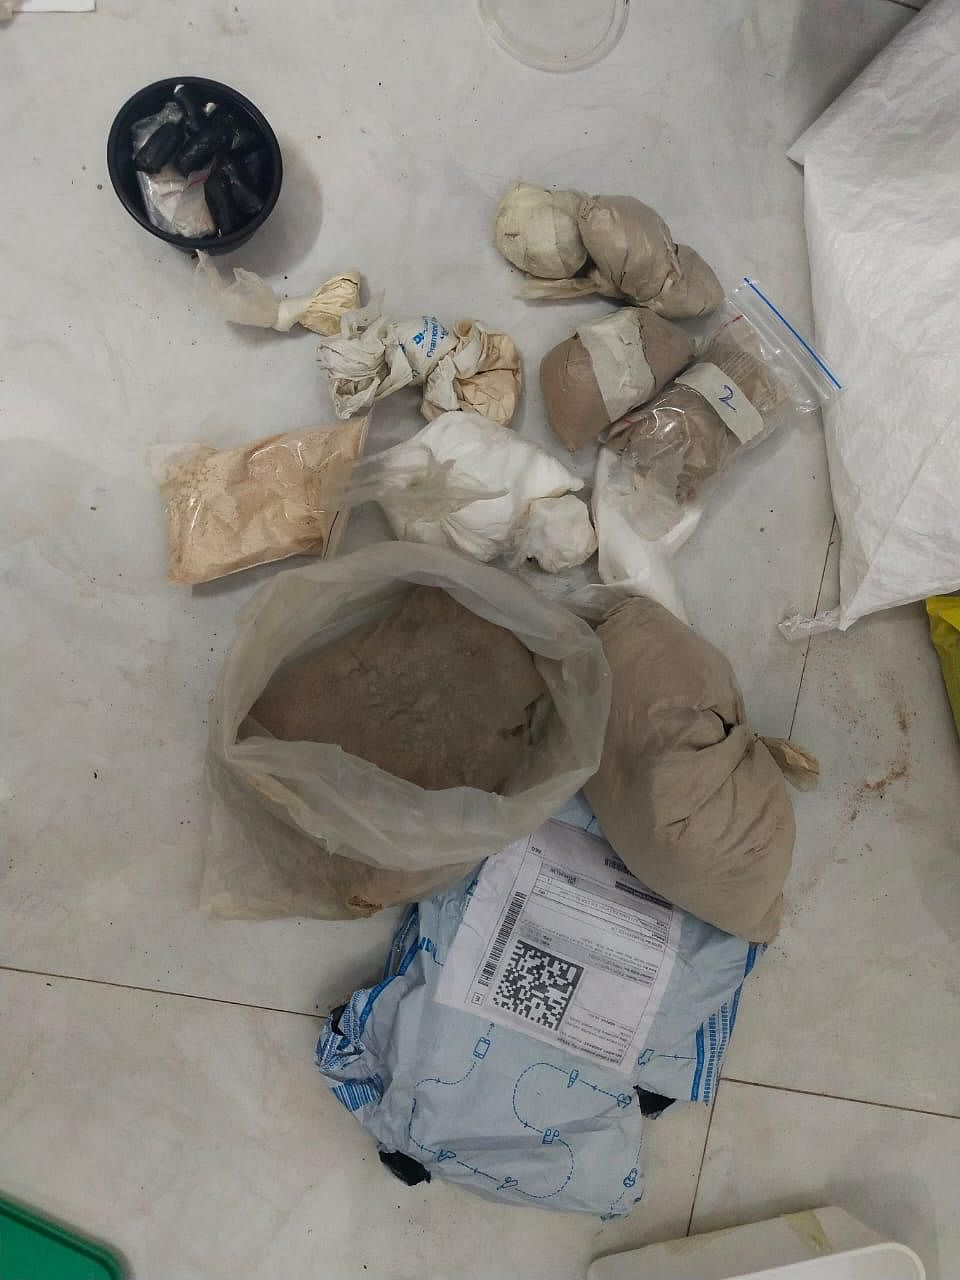 """""""We have seized 1 kg 25 gram of M.D (mephedrone) worth Rs 2.50 crore and 1 kg 80 grams of heroin worth Rs 3.24 crore in international market, and cash worth Rs 65,000 from the accused. Salim was arrested by the ANC in 2016. We are further investigating to establish the supply chain,"""" said Datta Nalawade, deputy commissioner of police, ANC, Mumbai crime branch."""